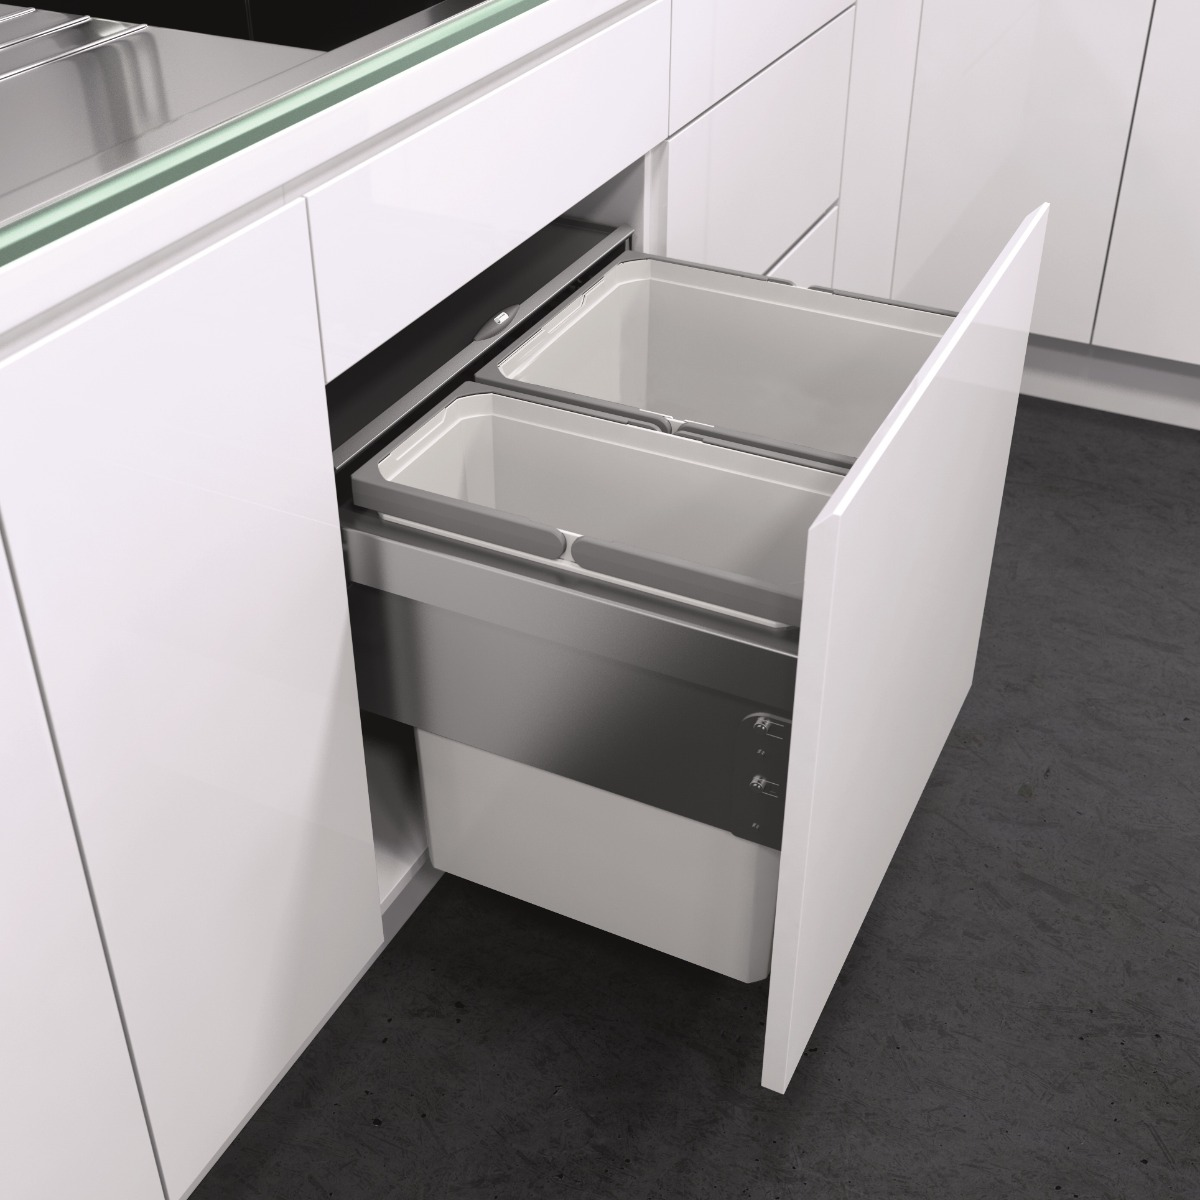 Kitchen Cupboard Doors 500mm X 570mm The Best Built In Bins And Recyclers For Kitchen Cupboards Binopolis